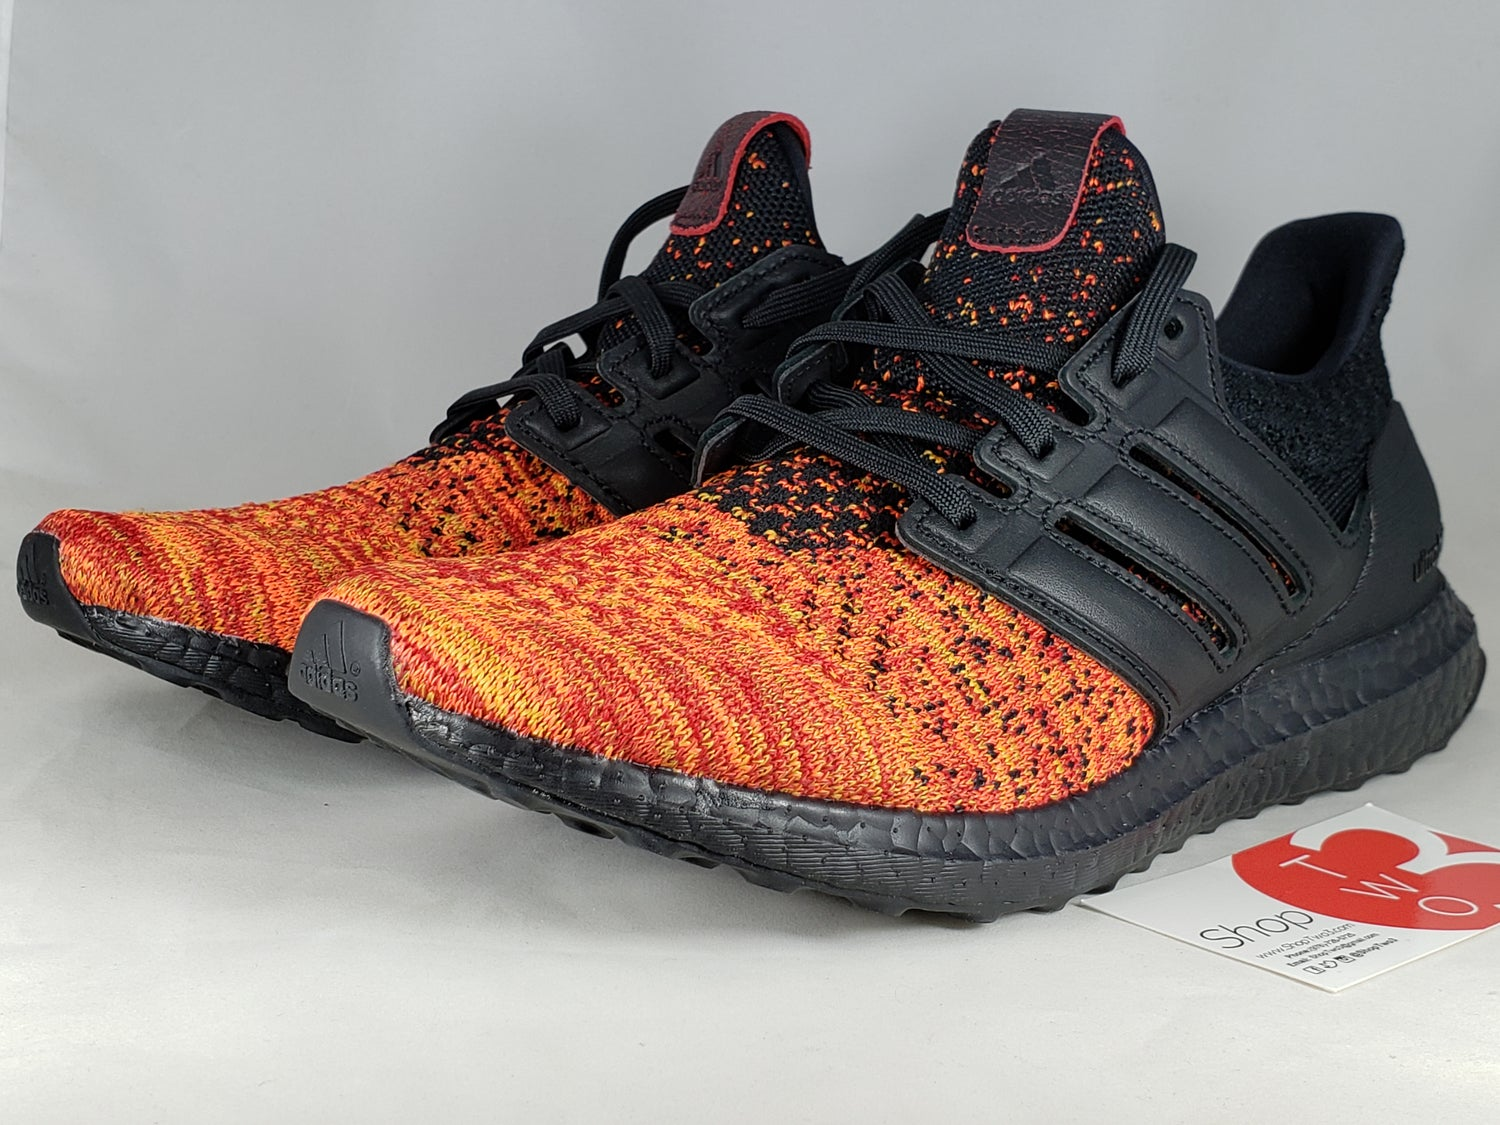 015010481 Image of Adidas Ultraboost x GOT